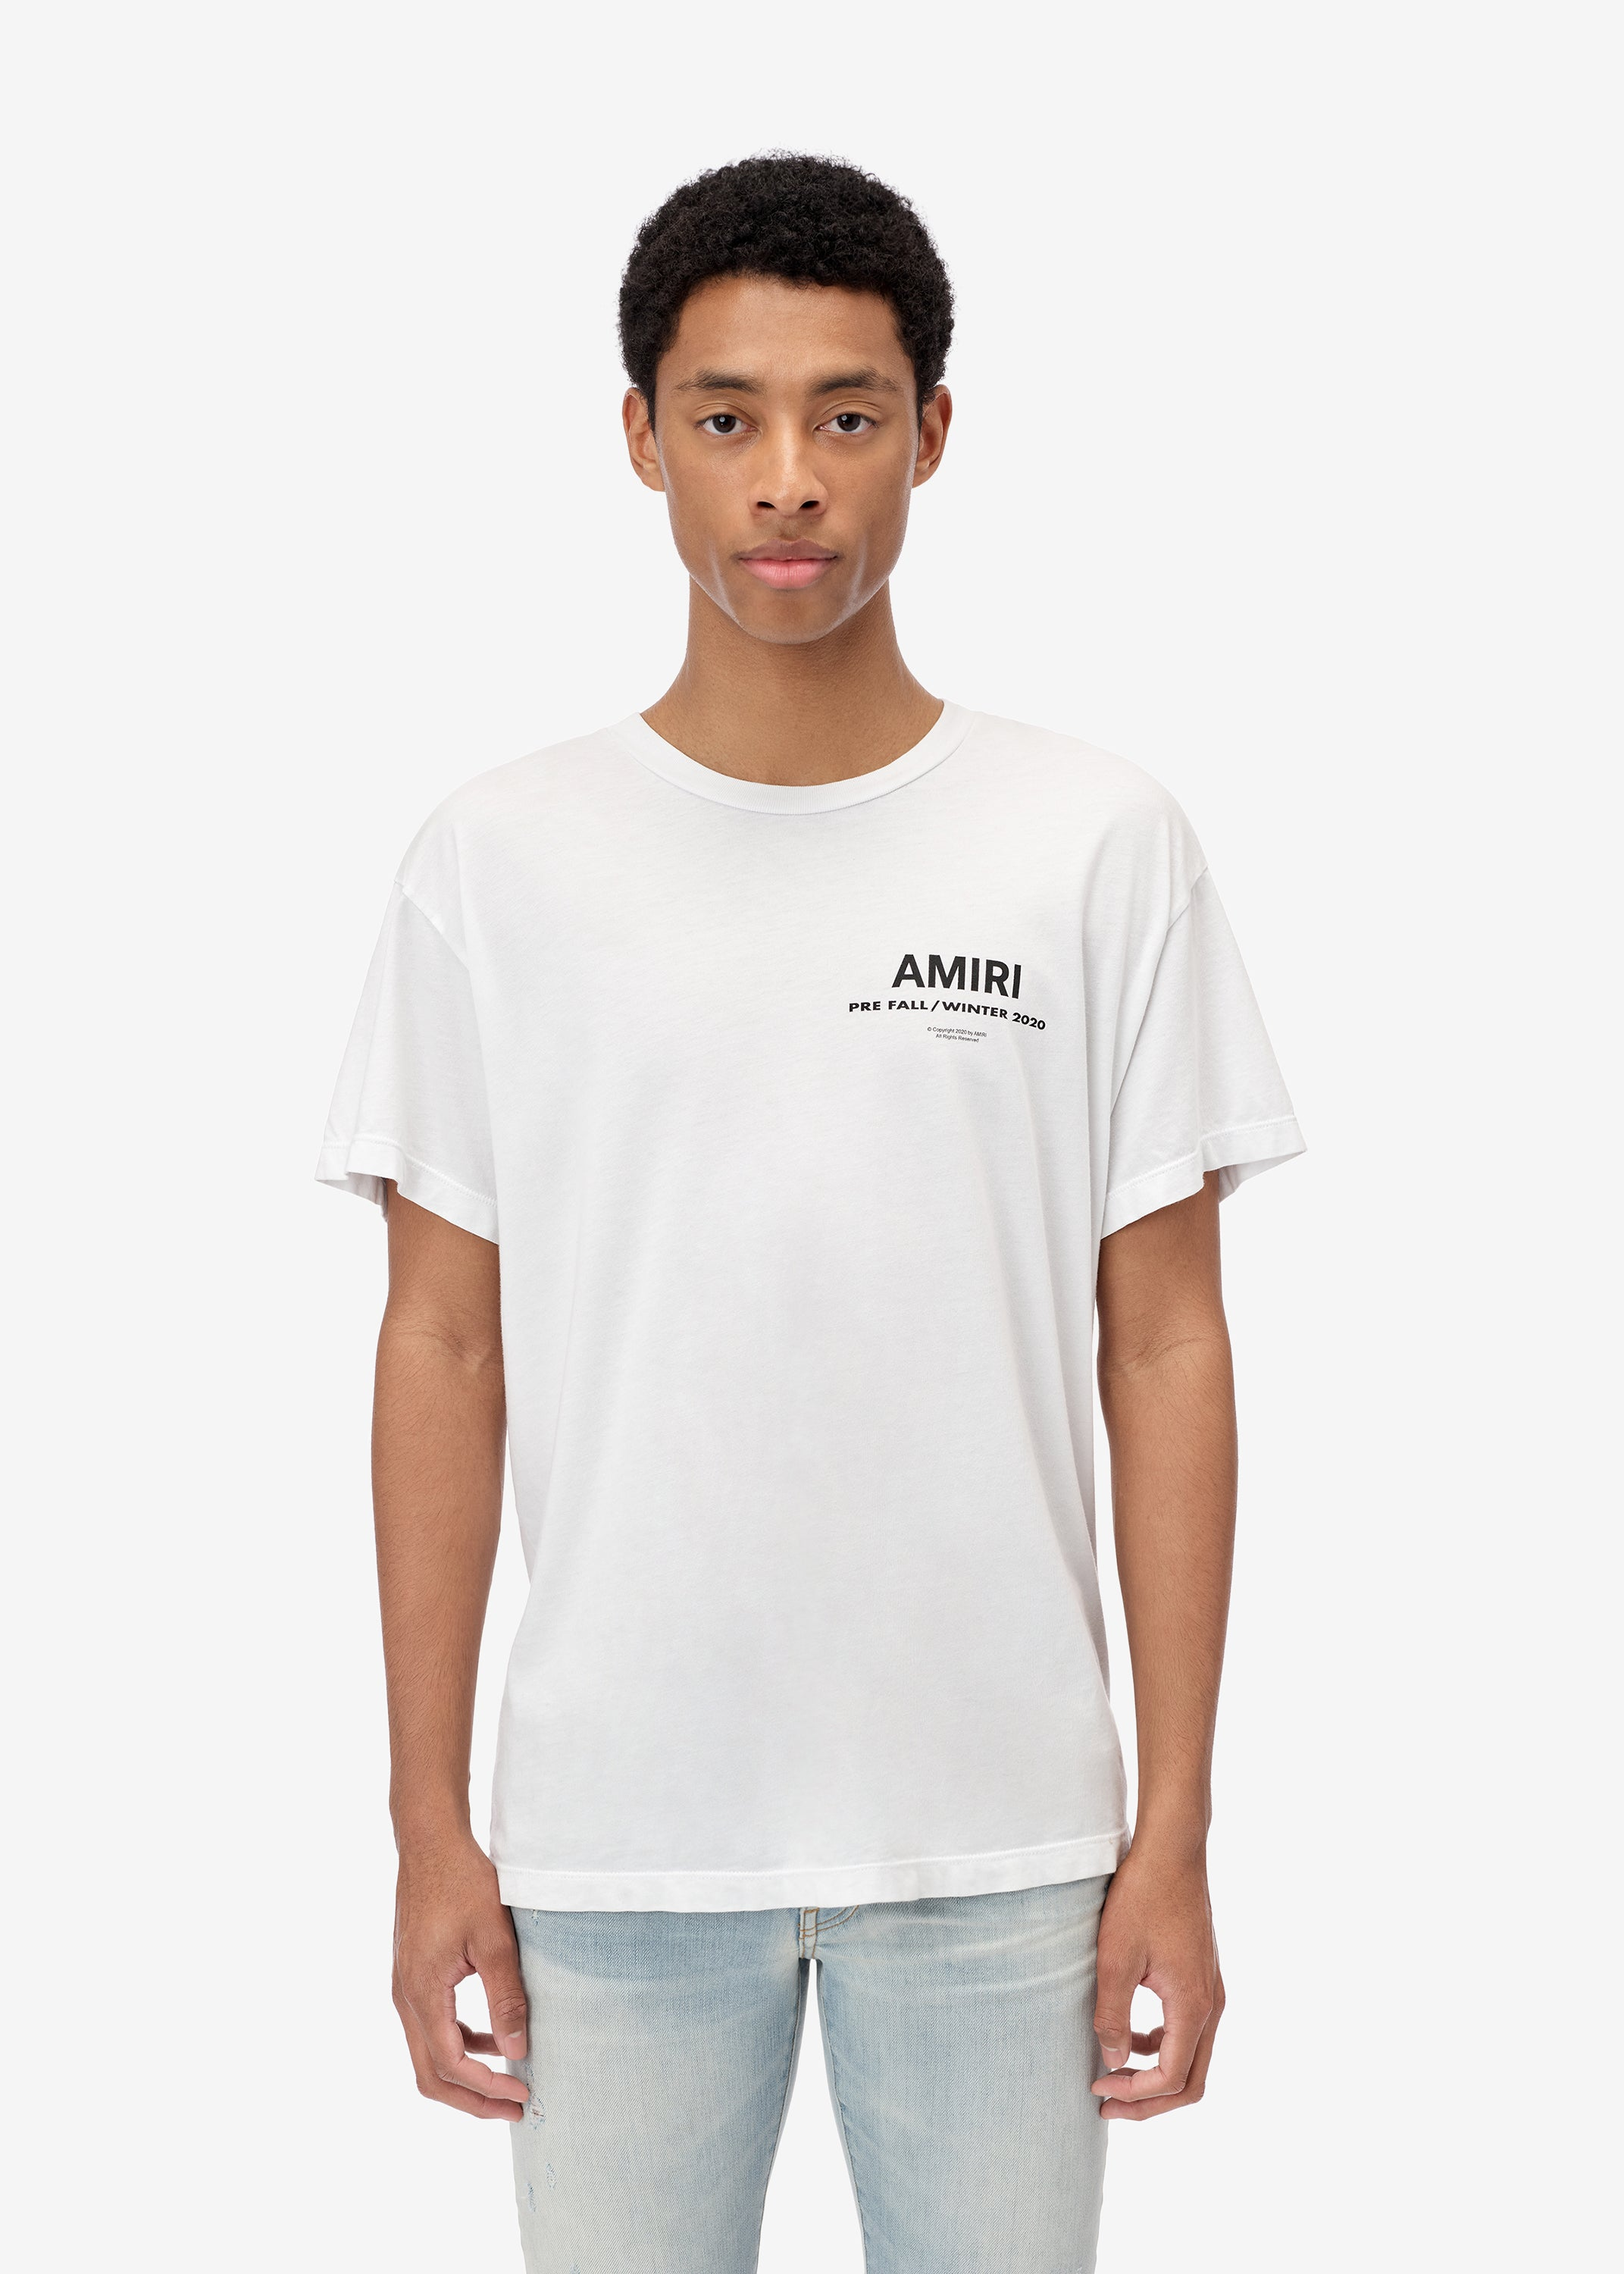 pf20-amiri-tee-web-exclusive-white-image-1